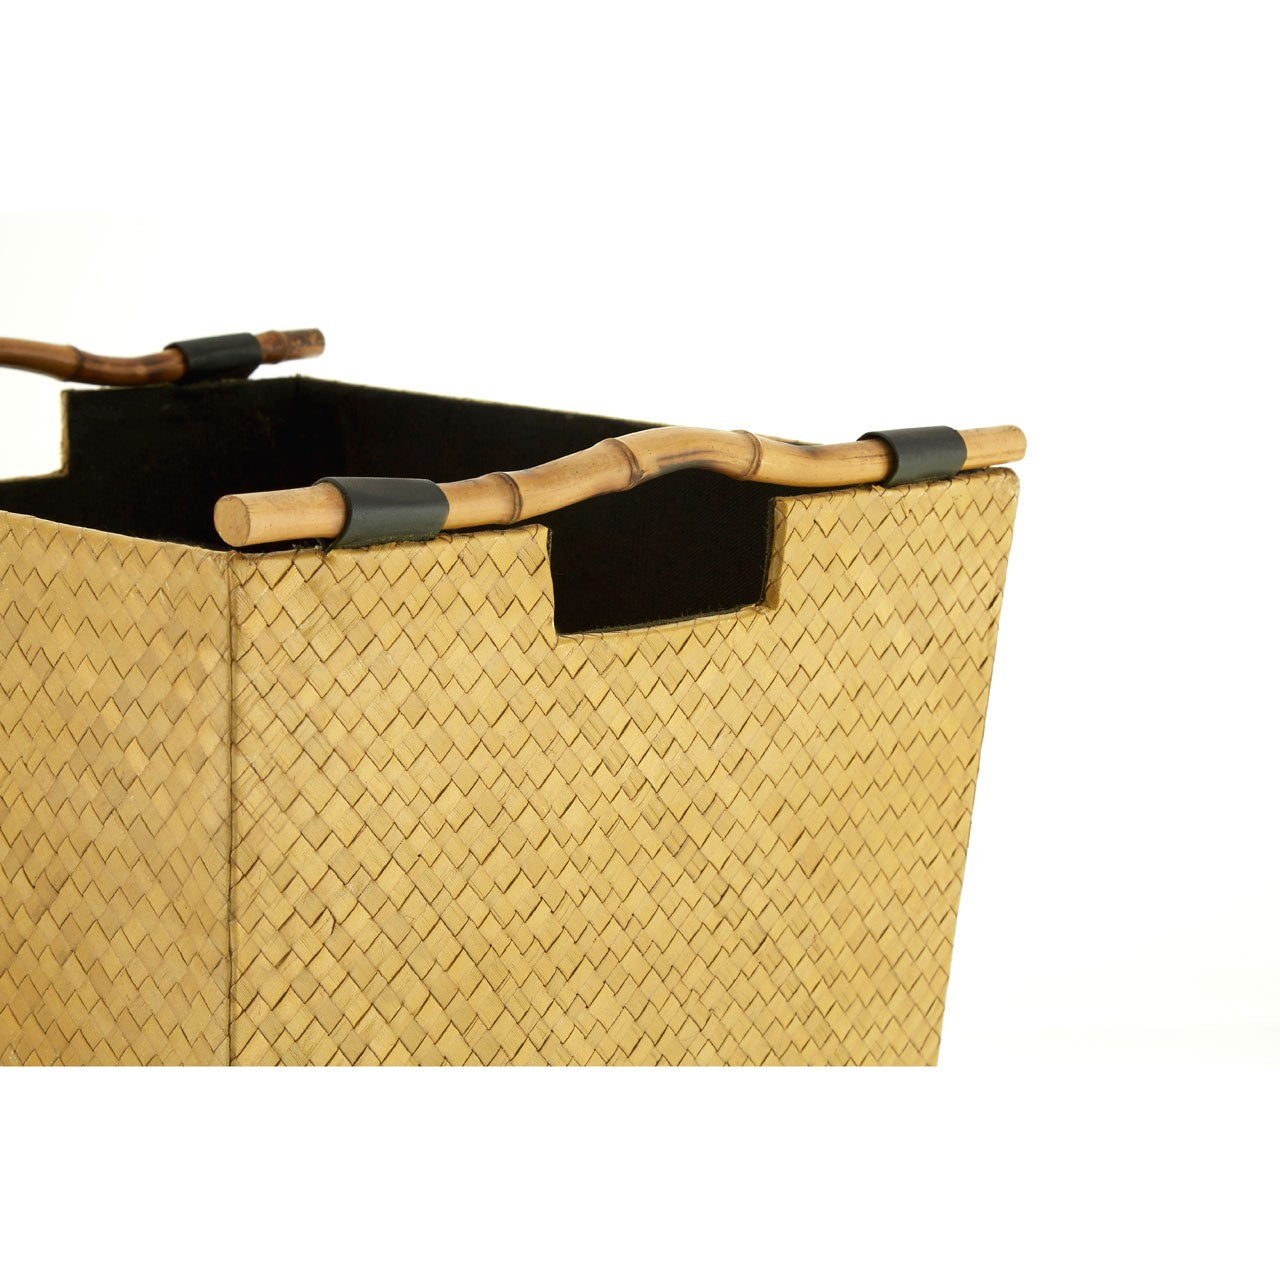 Pandanus Storage Baskets Handle